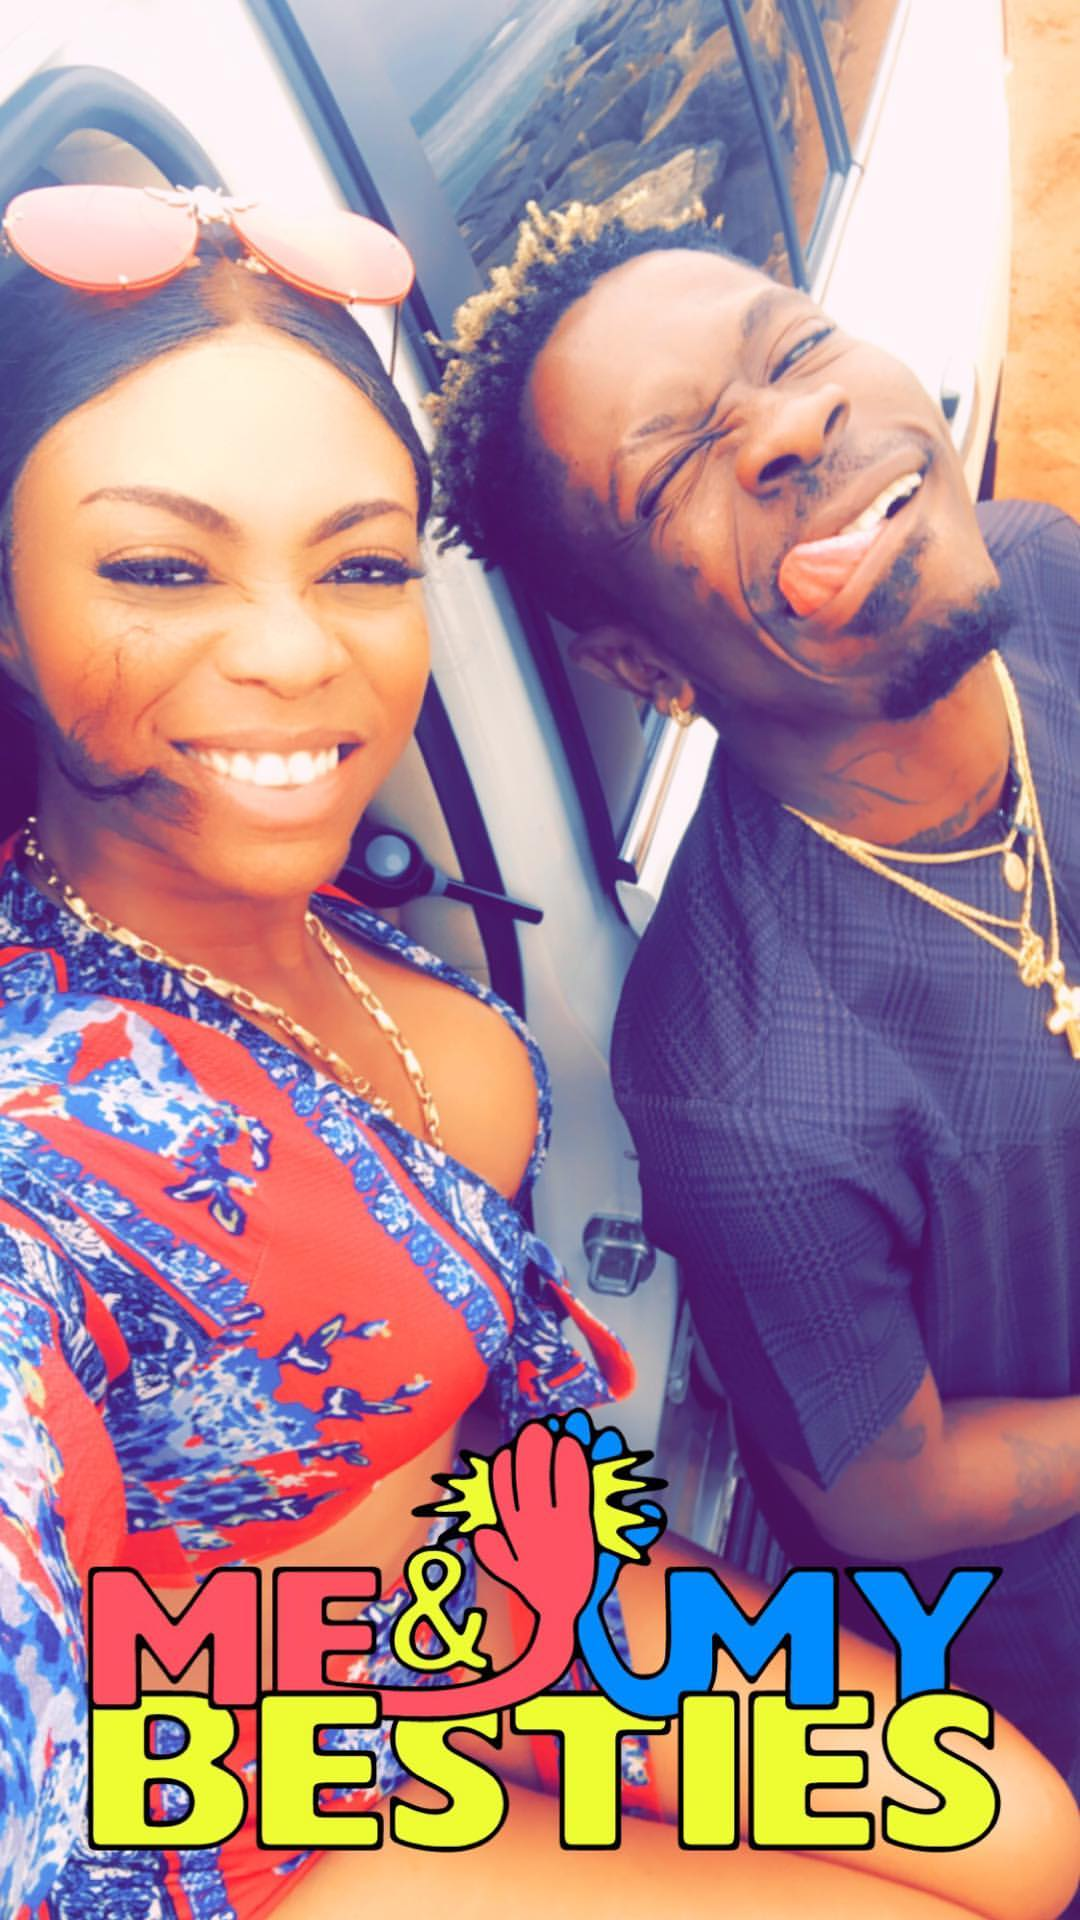 Shatta Wale And Michy Kiss As They Hit The Beach